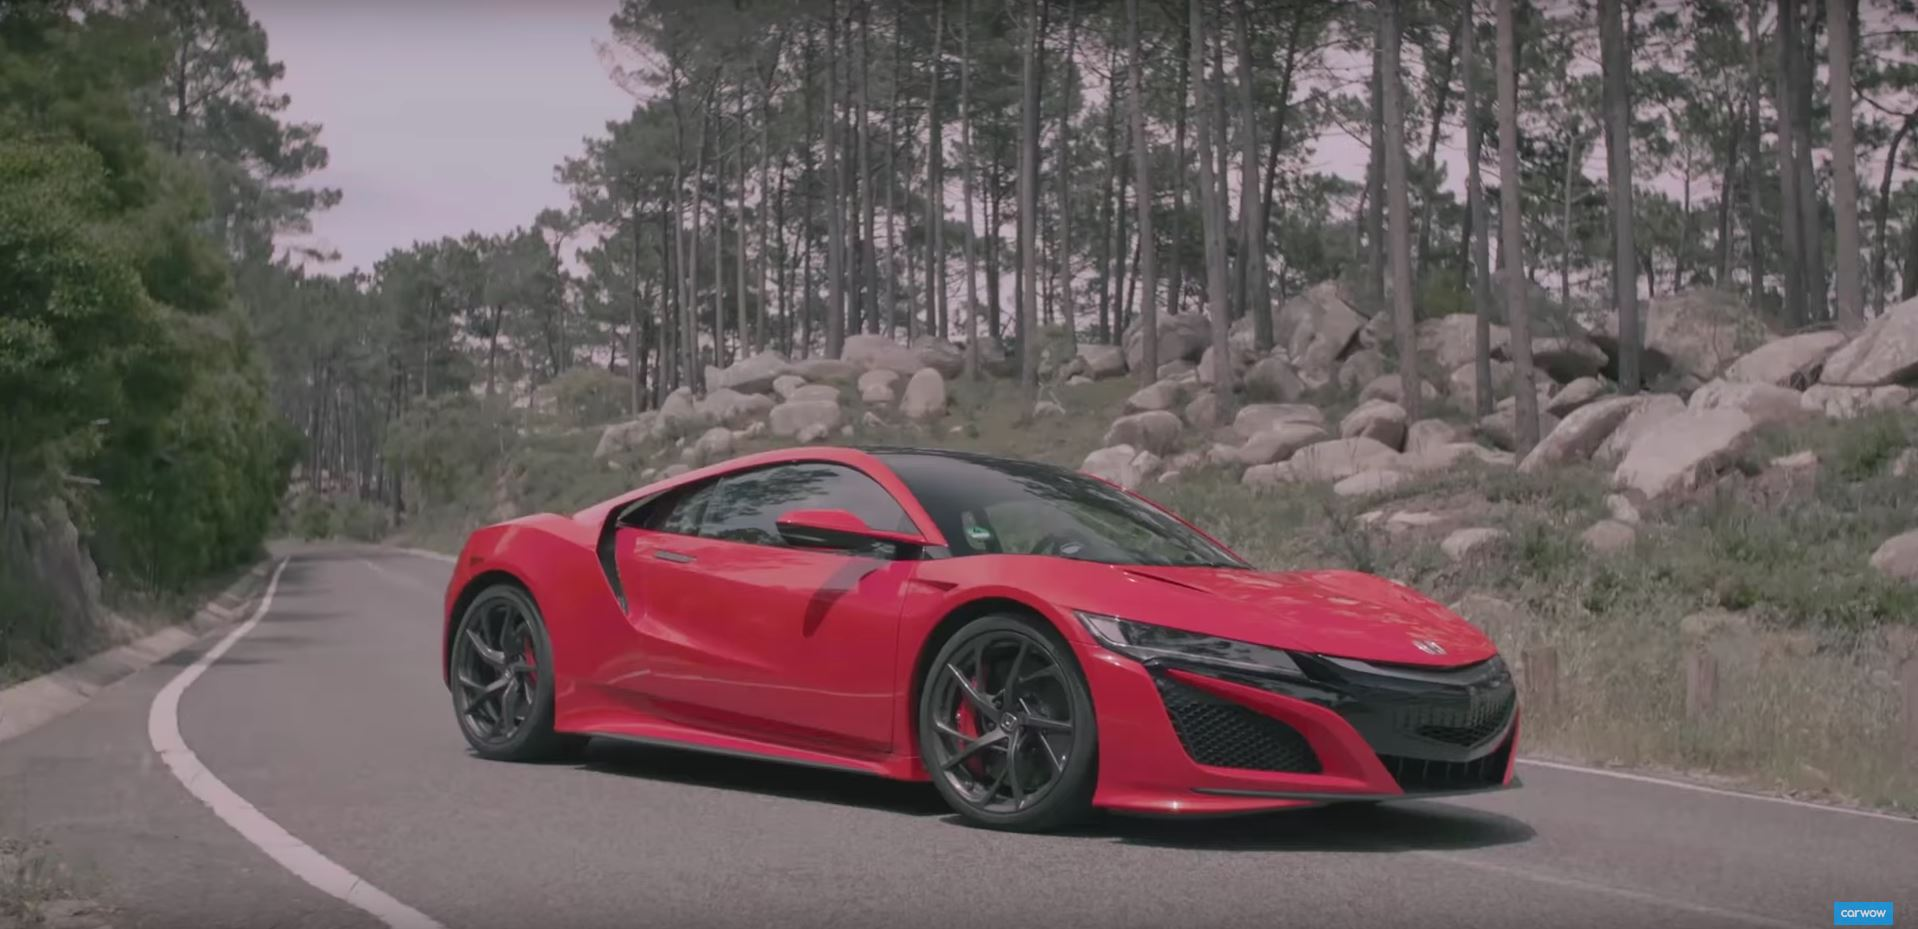 New Honda Nsx Review Comes With Matching 360 Degree Footage